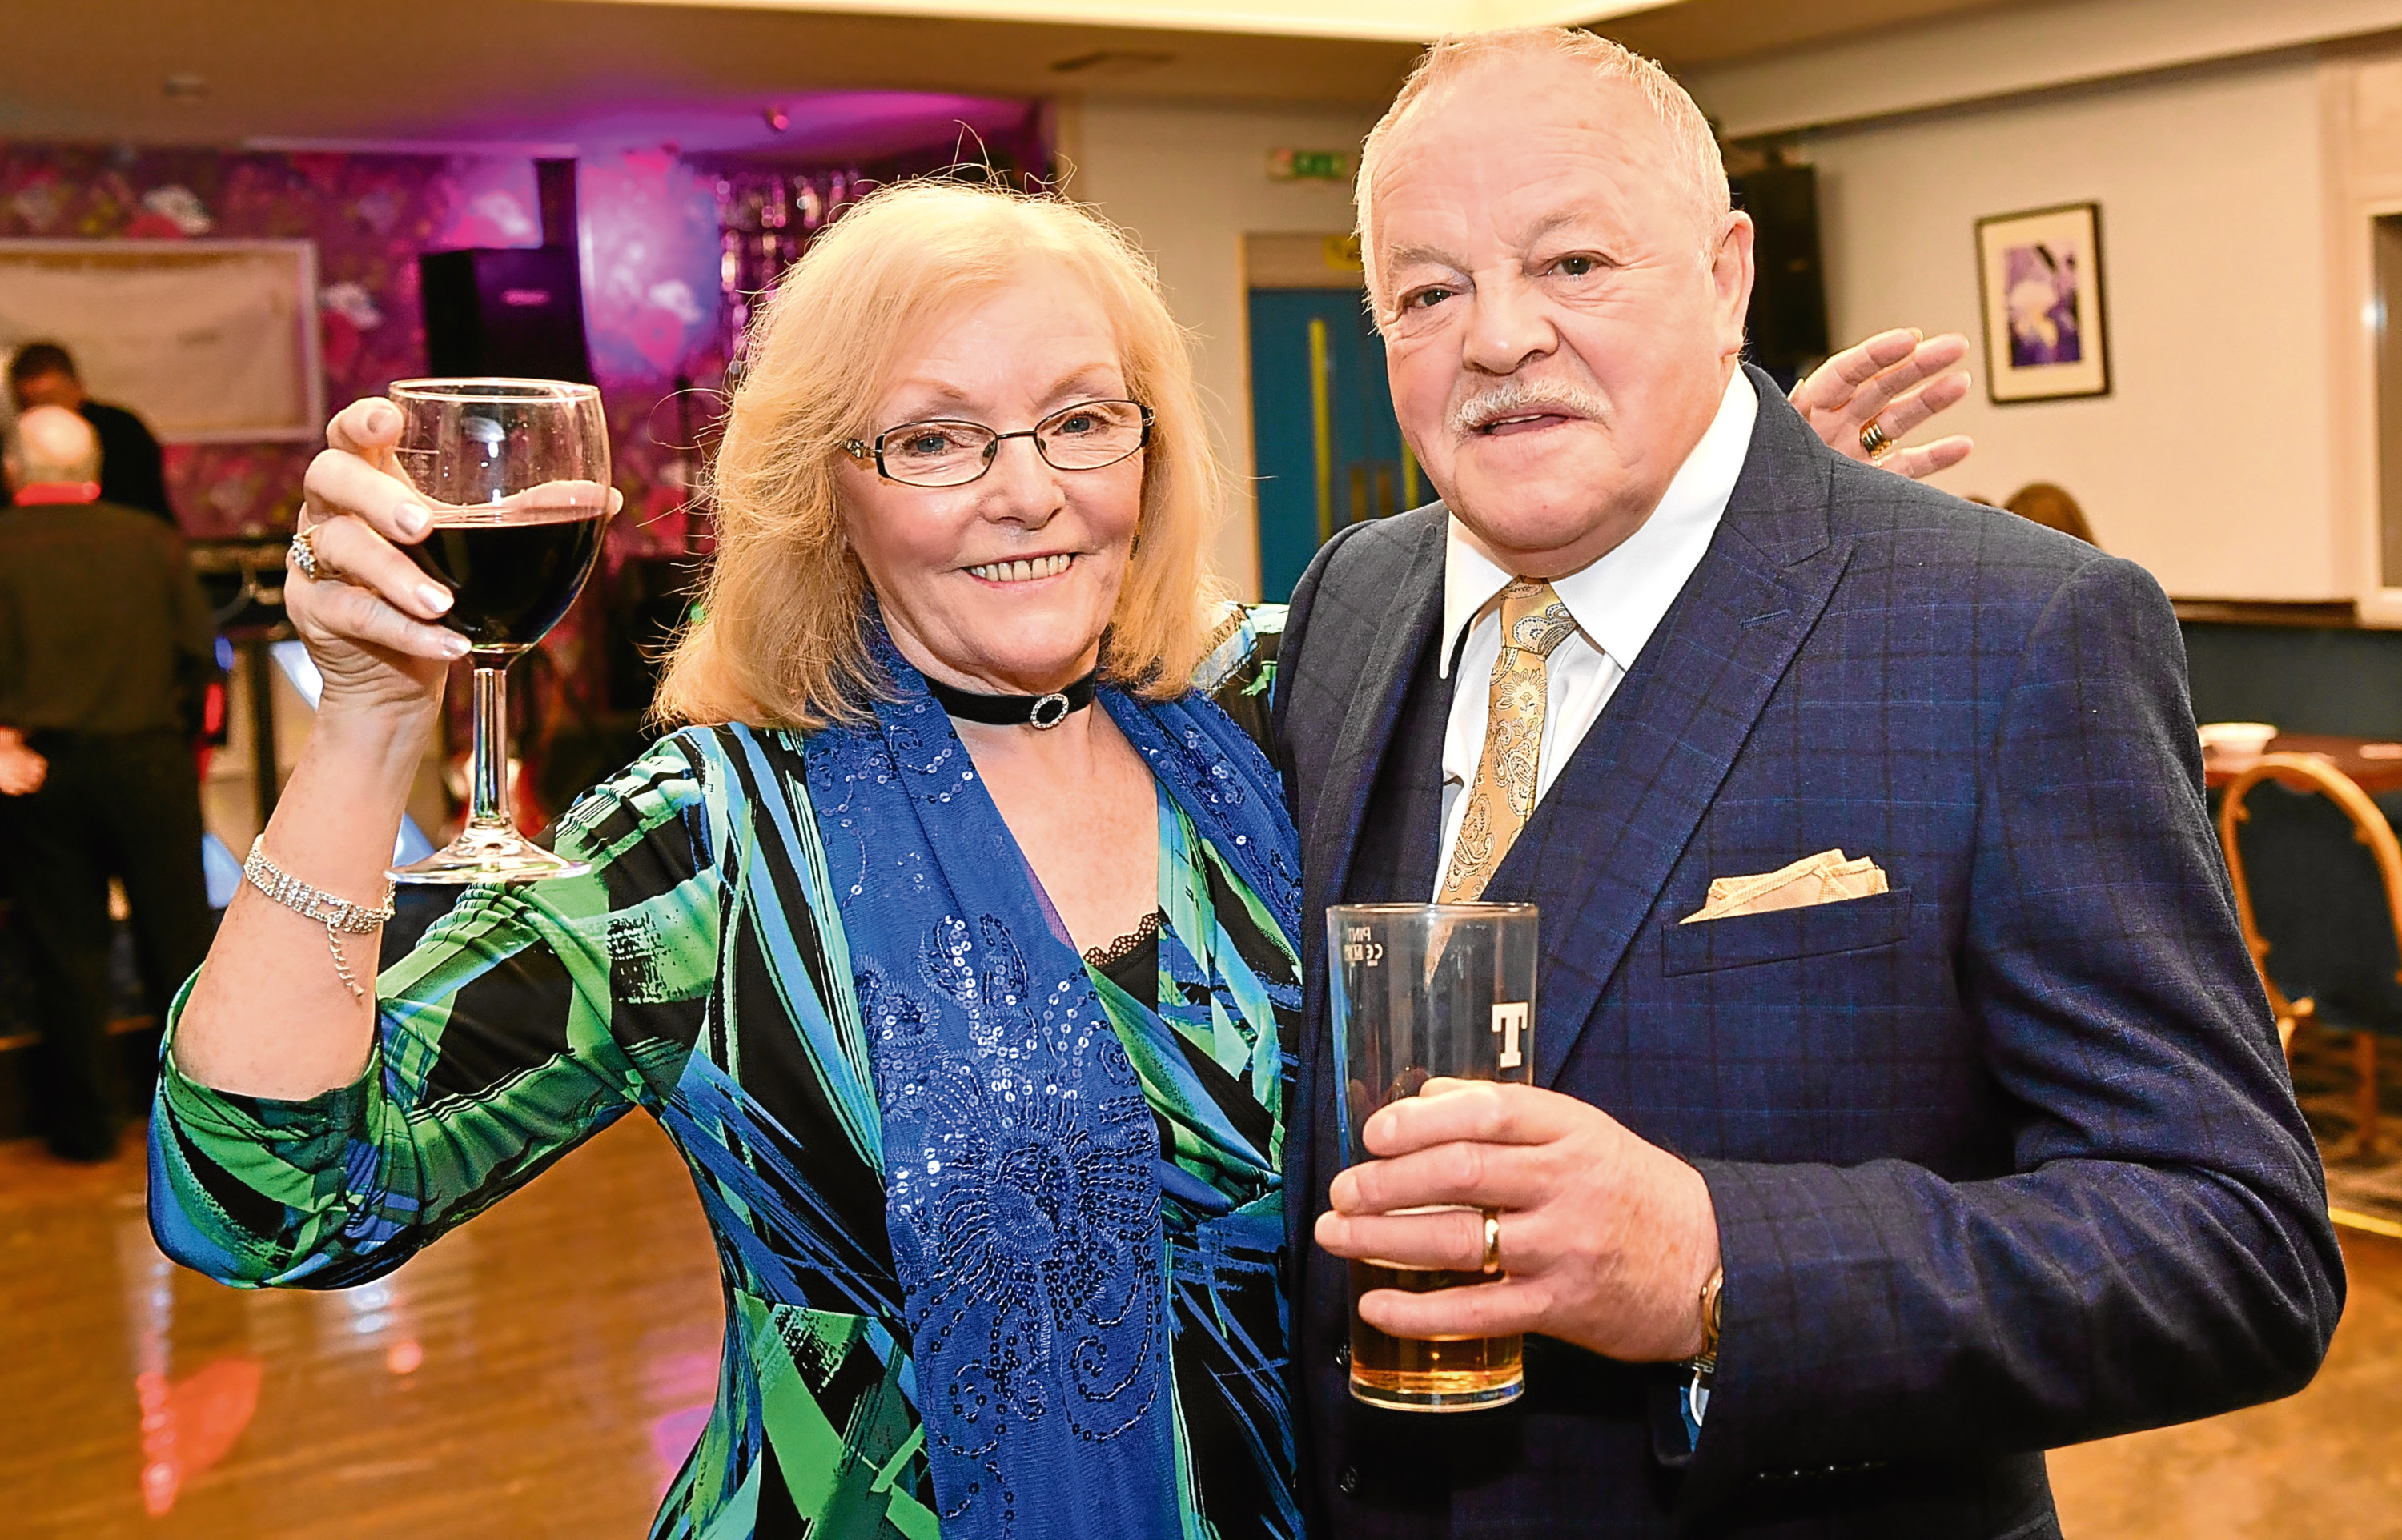 Trish and Billy Colbert celebrated their golden wedding anniversary with a party at the RUA Club.